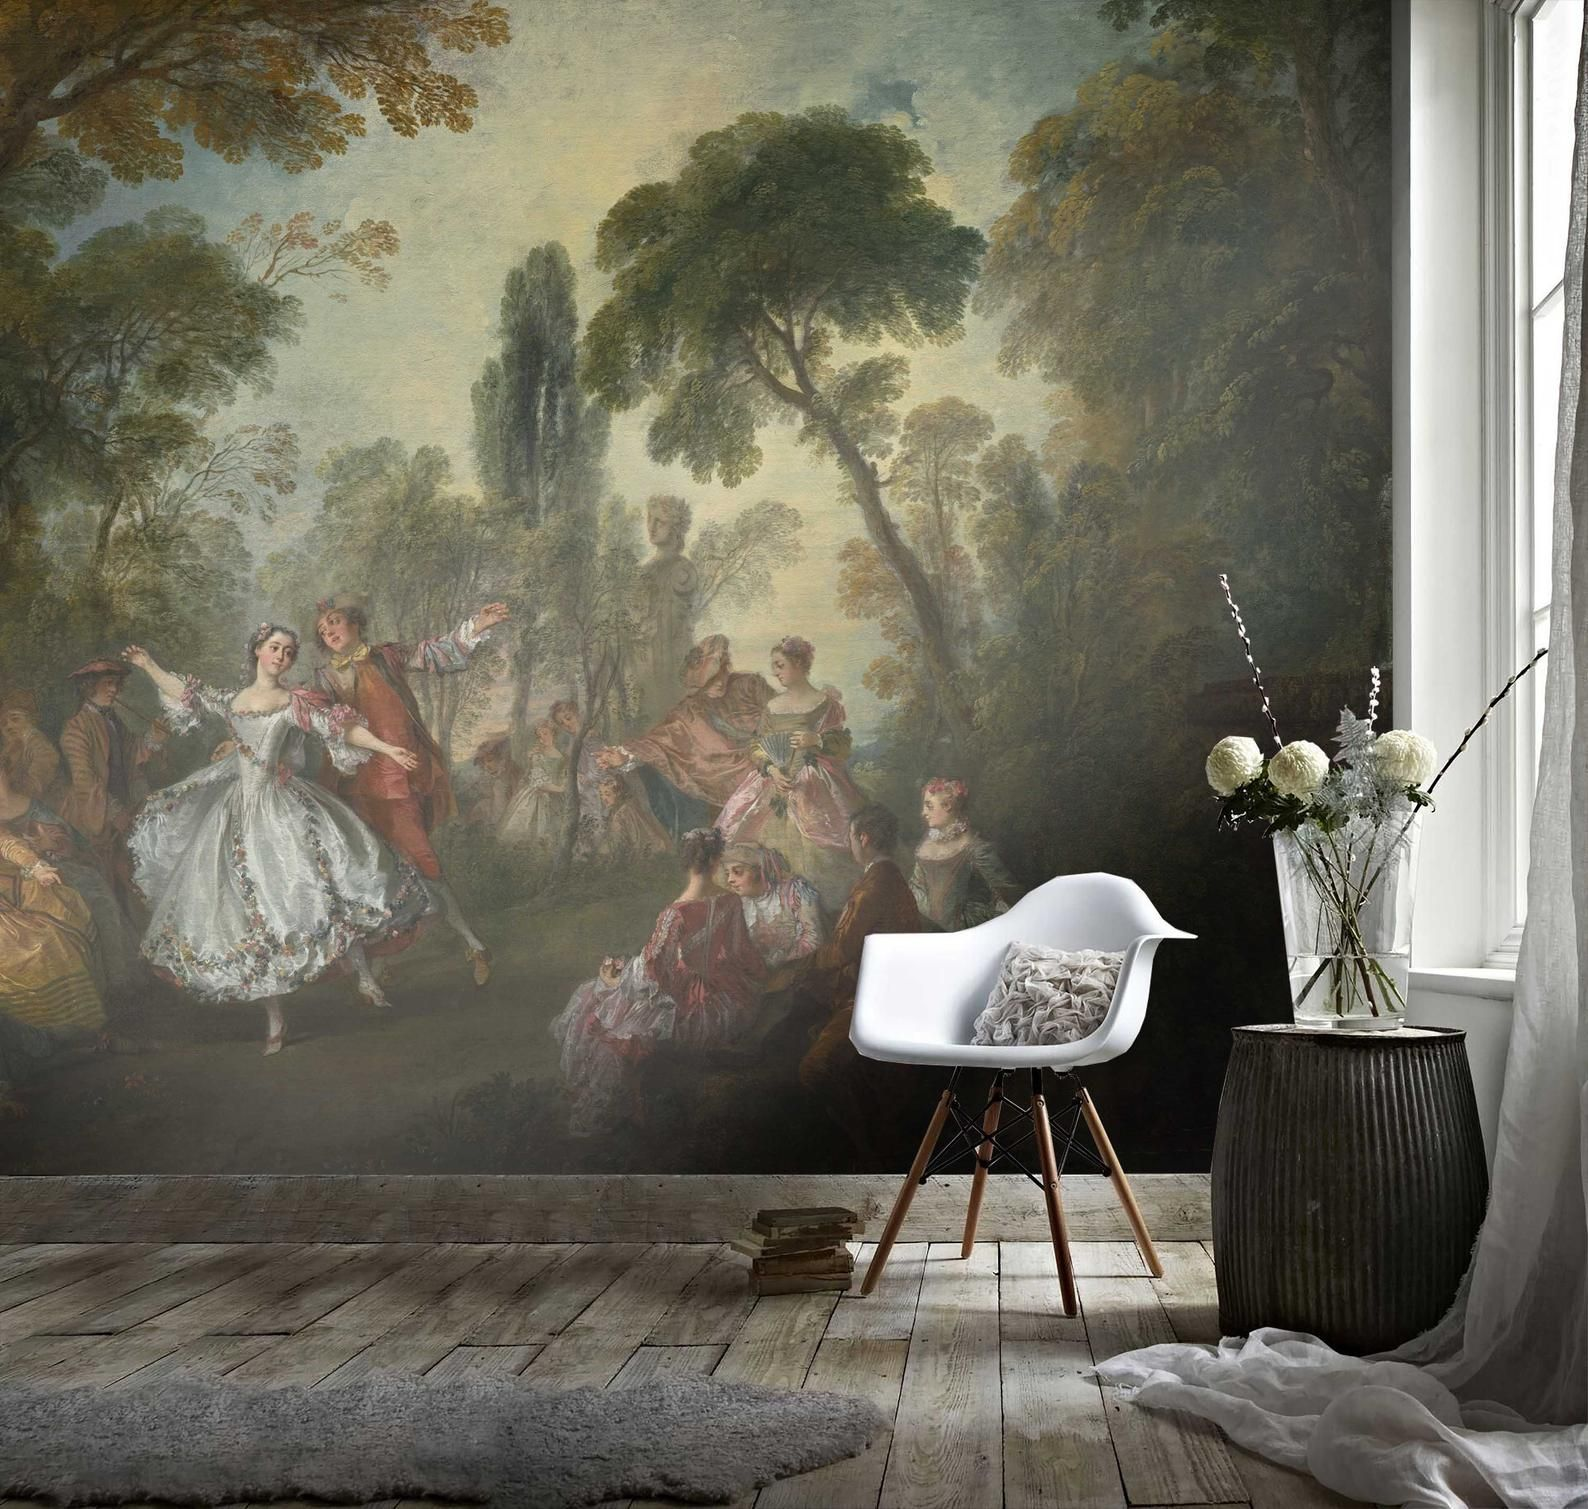 Bamboo Wall Mural Removable Wallpaper From Print4one Easy To Apply Peel Stick Full Wall Covering High Def Bamboo Wall Decorating Solutions Mural Wallpaper